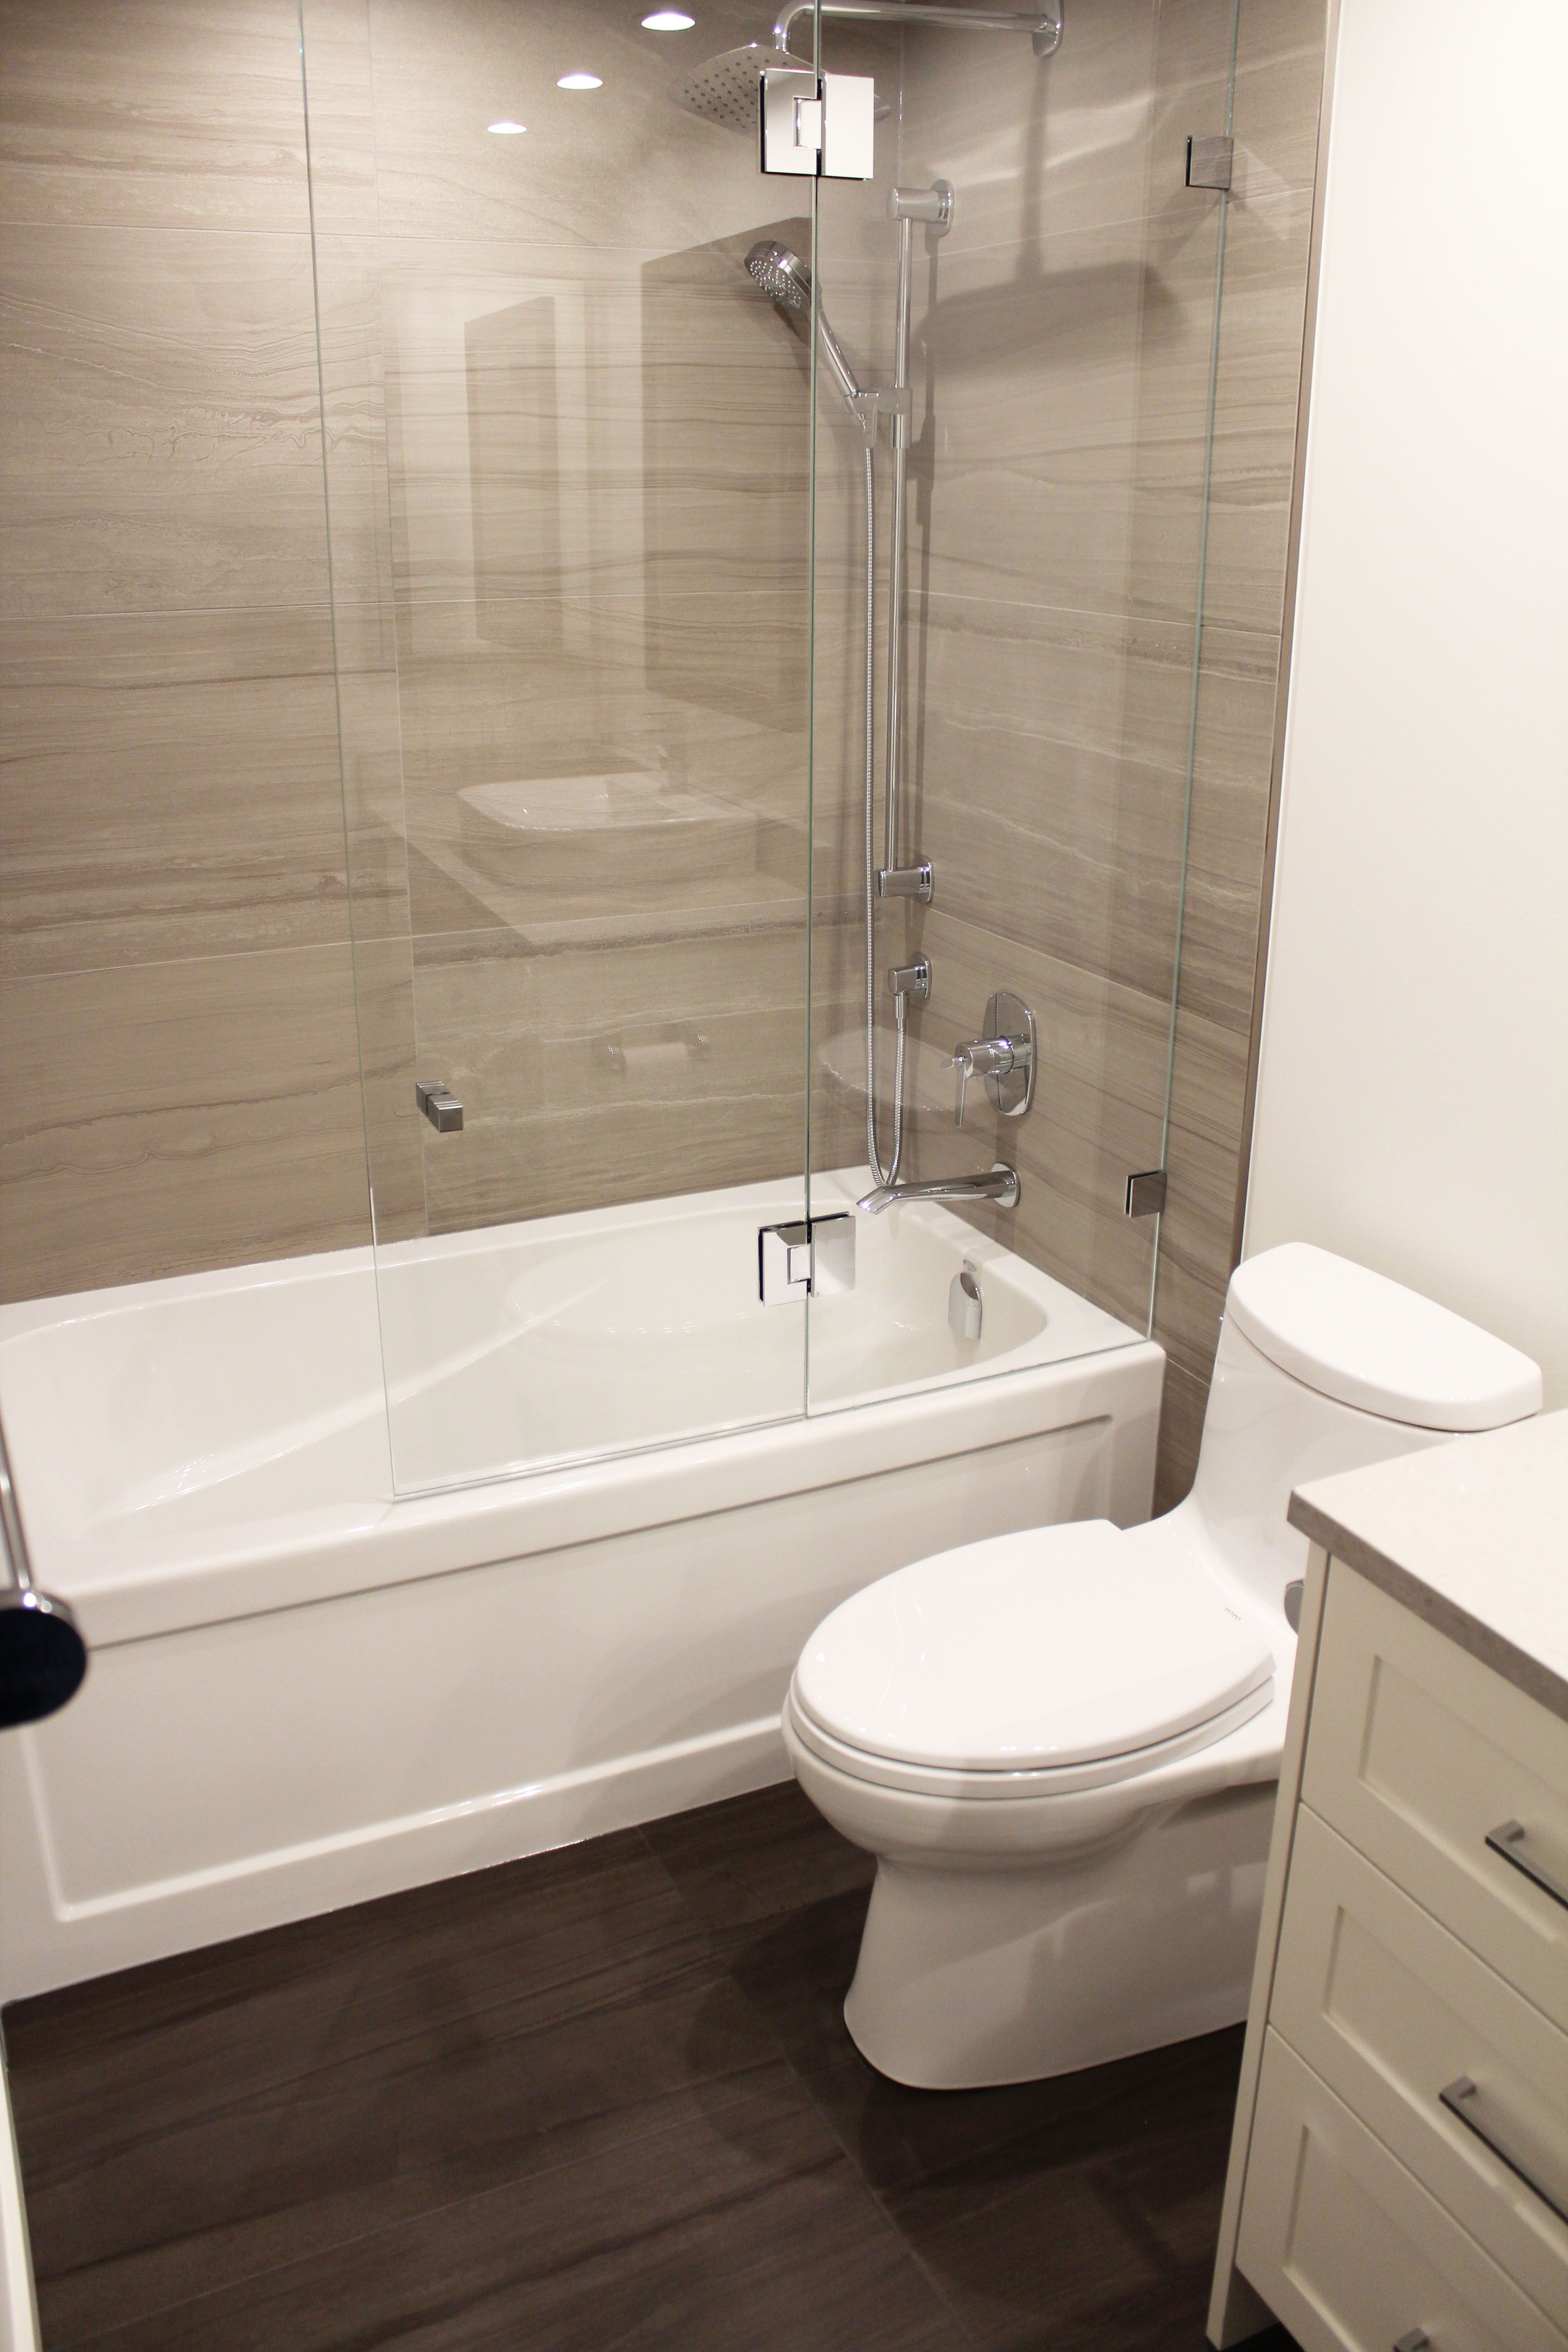 Small Space Bathroom Renovations Ideas Http Tyuka Info Small Space Bathroom Renovations I Condo Bathroom Small Space Bathroom Beautiful Bathroom Renovations